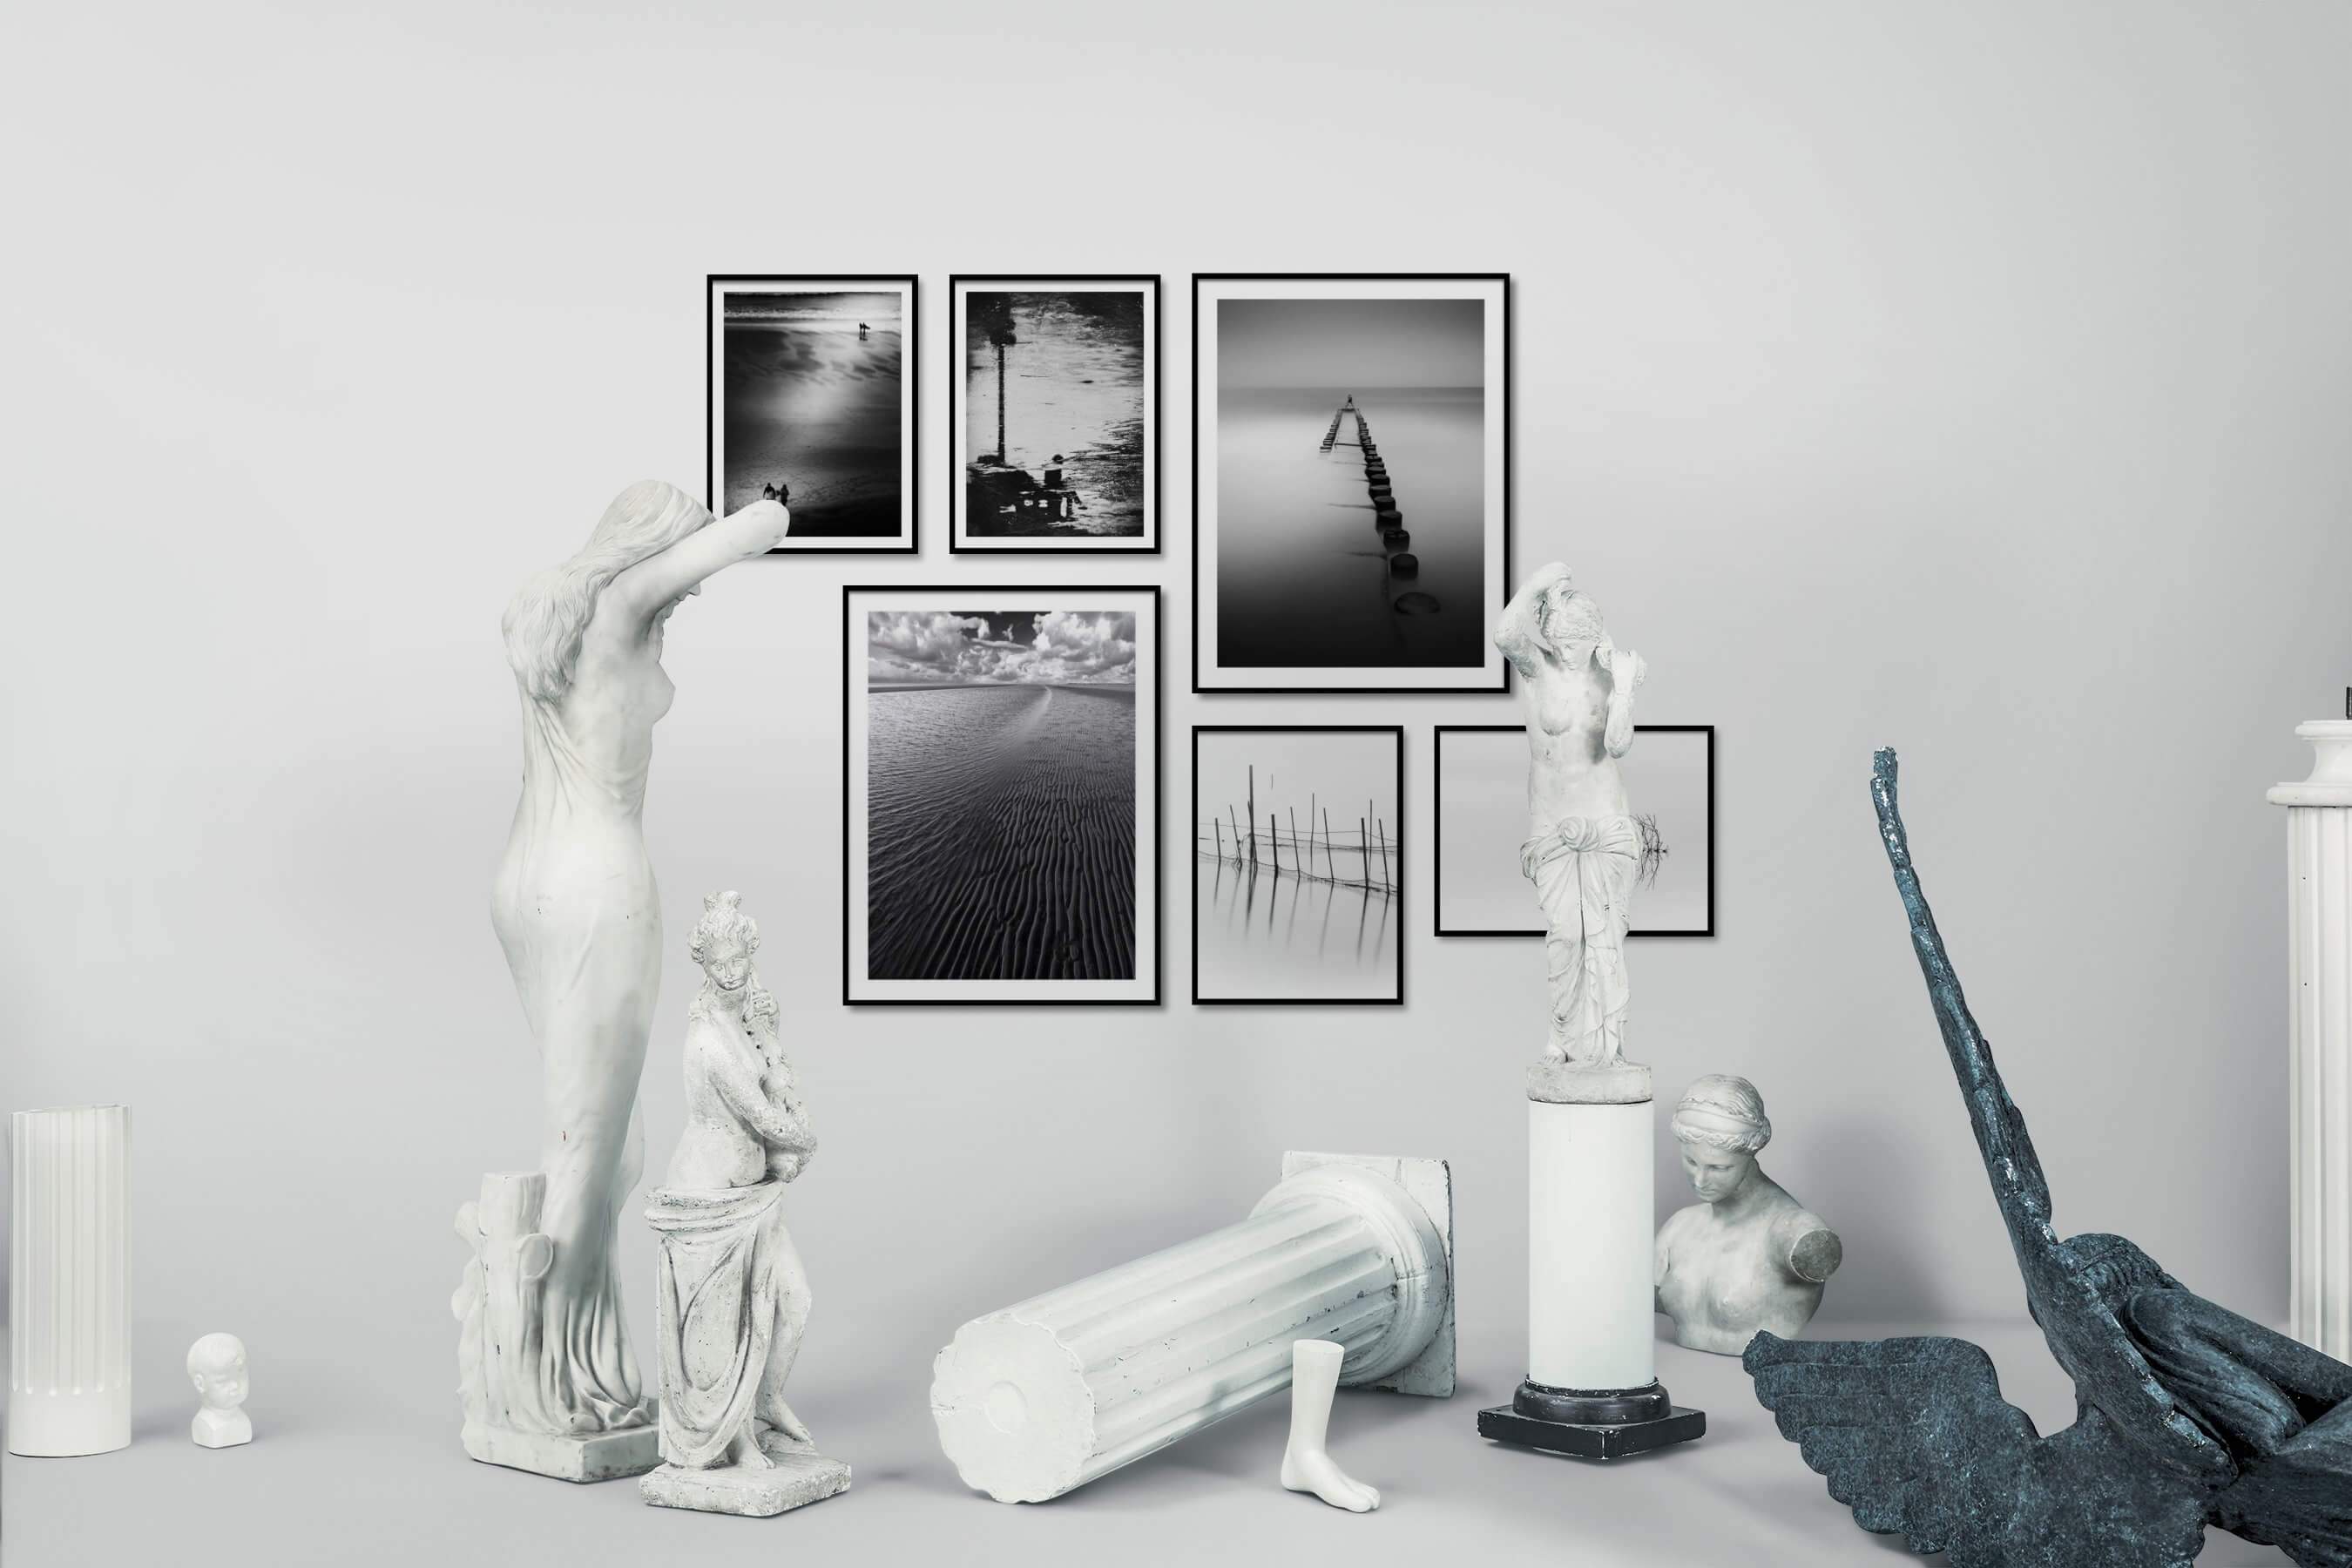 Gallery wall idea with six framed pictures arranged on a wall depicting Black & White, Beach & Water, For the Moderate, City Life, For the Minimalist, Mindfulness, Bright Tones, and Nature